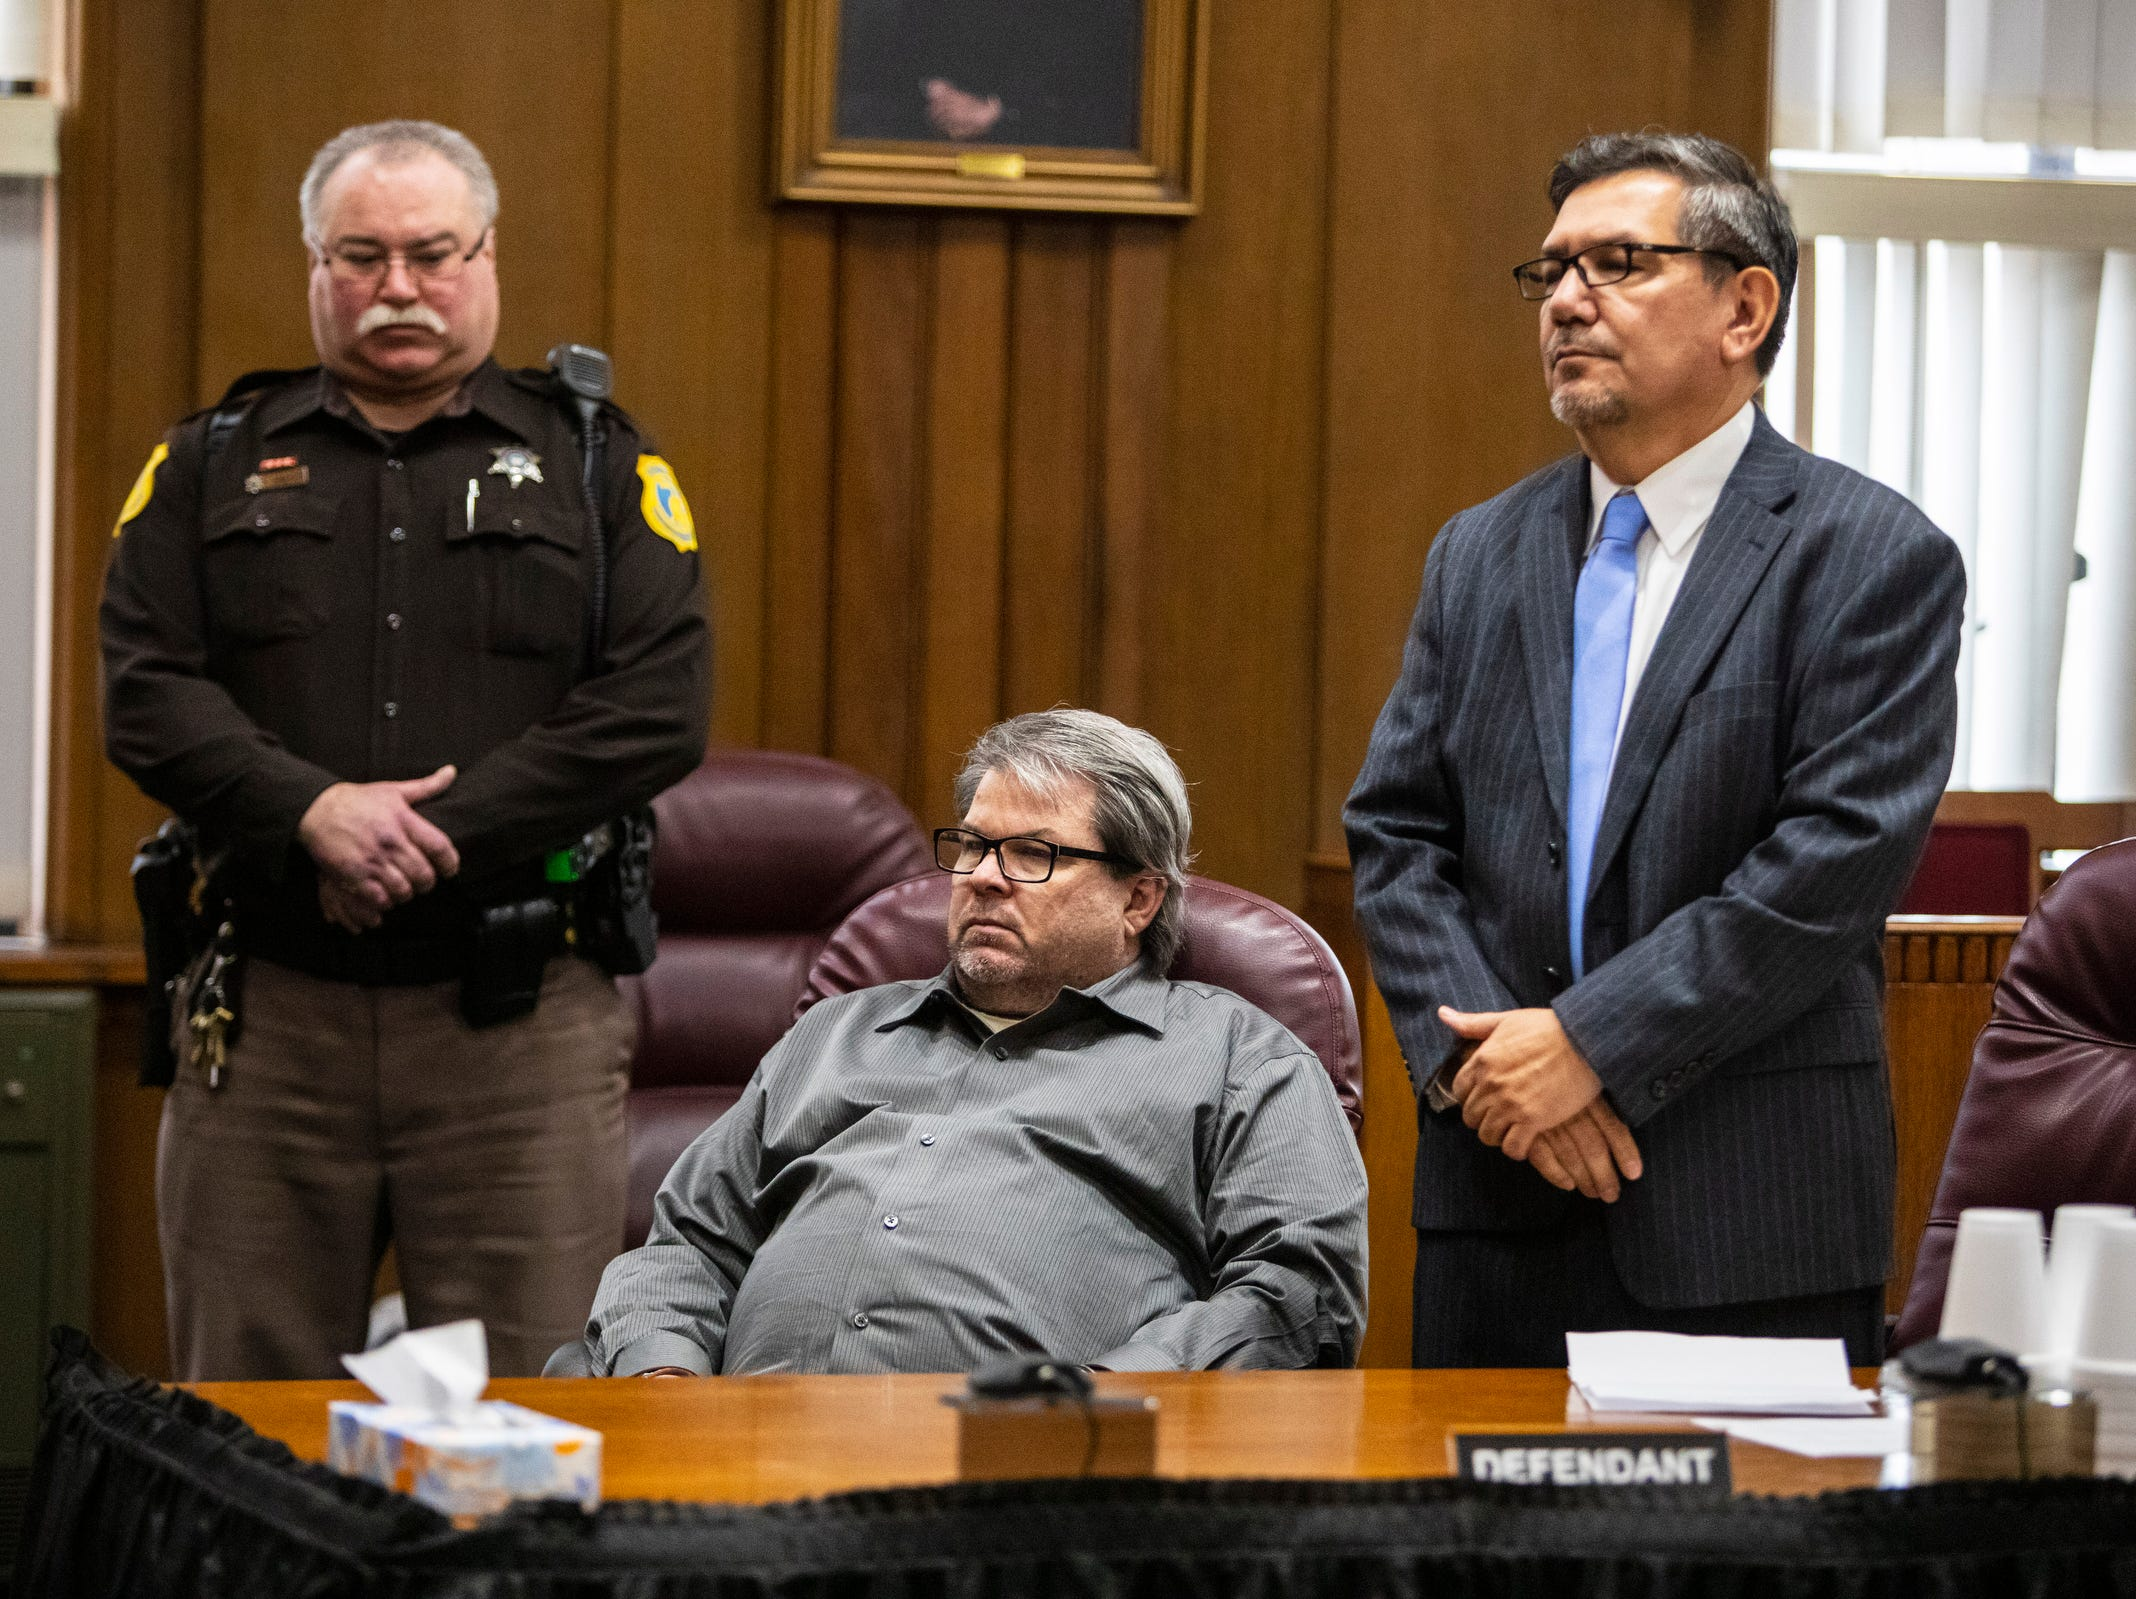 Jason Dalton moments before pleading guilty to six counts of murder and several other charges at the Kalamazoo County Courthouse on Monday, Jan. 7, 2019 in Kalamazoo, Michigan.  Dalton, who was driving for Uber at the time shot eight people killing six of them, on Saturday, Feb. 20, 2016. Opening statements in the trial were scheduled to begin Tuesday, Jan. 8. (Joel Bissell | MLive.com)